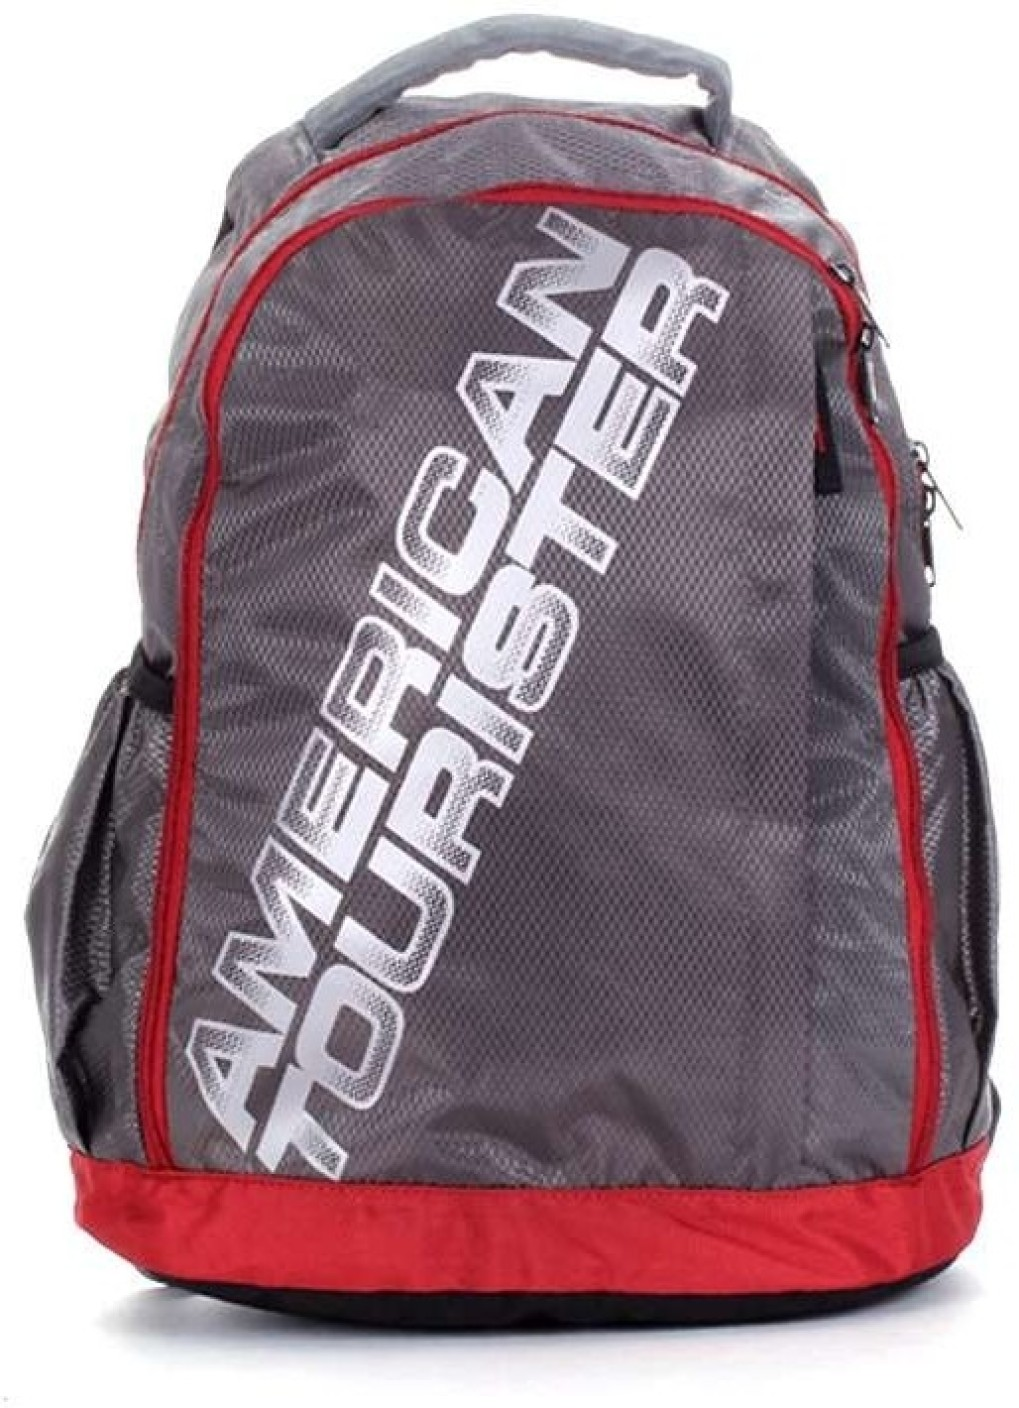 Tourister American bags logo pictures new photo